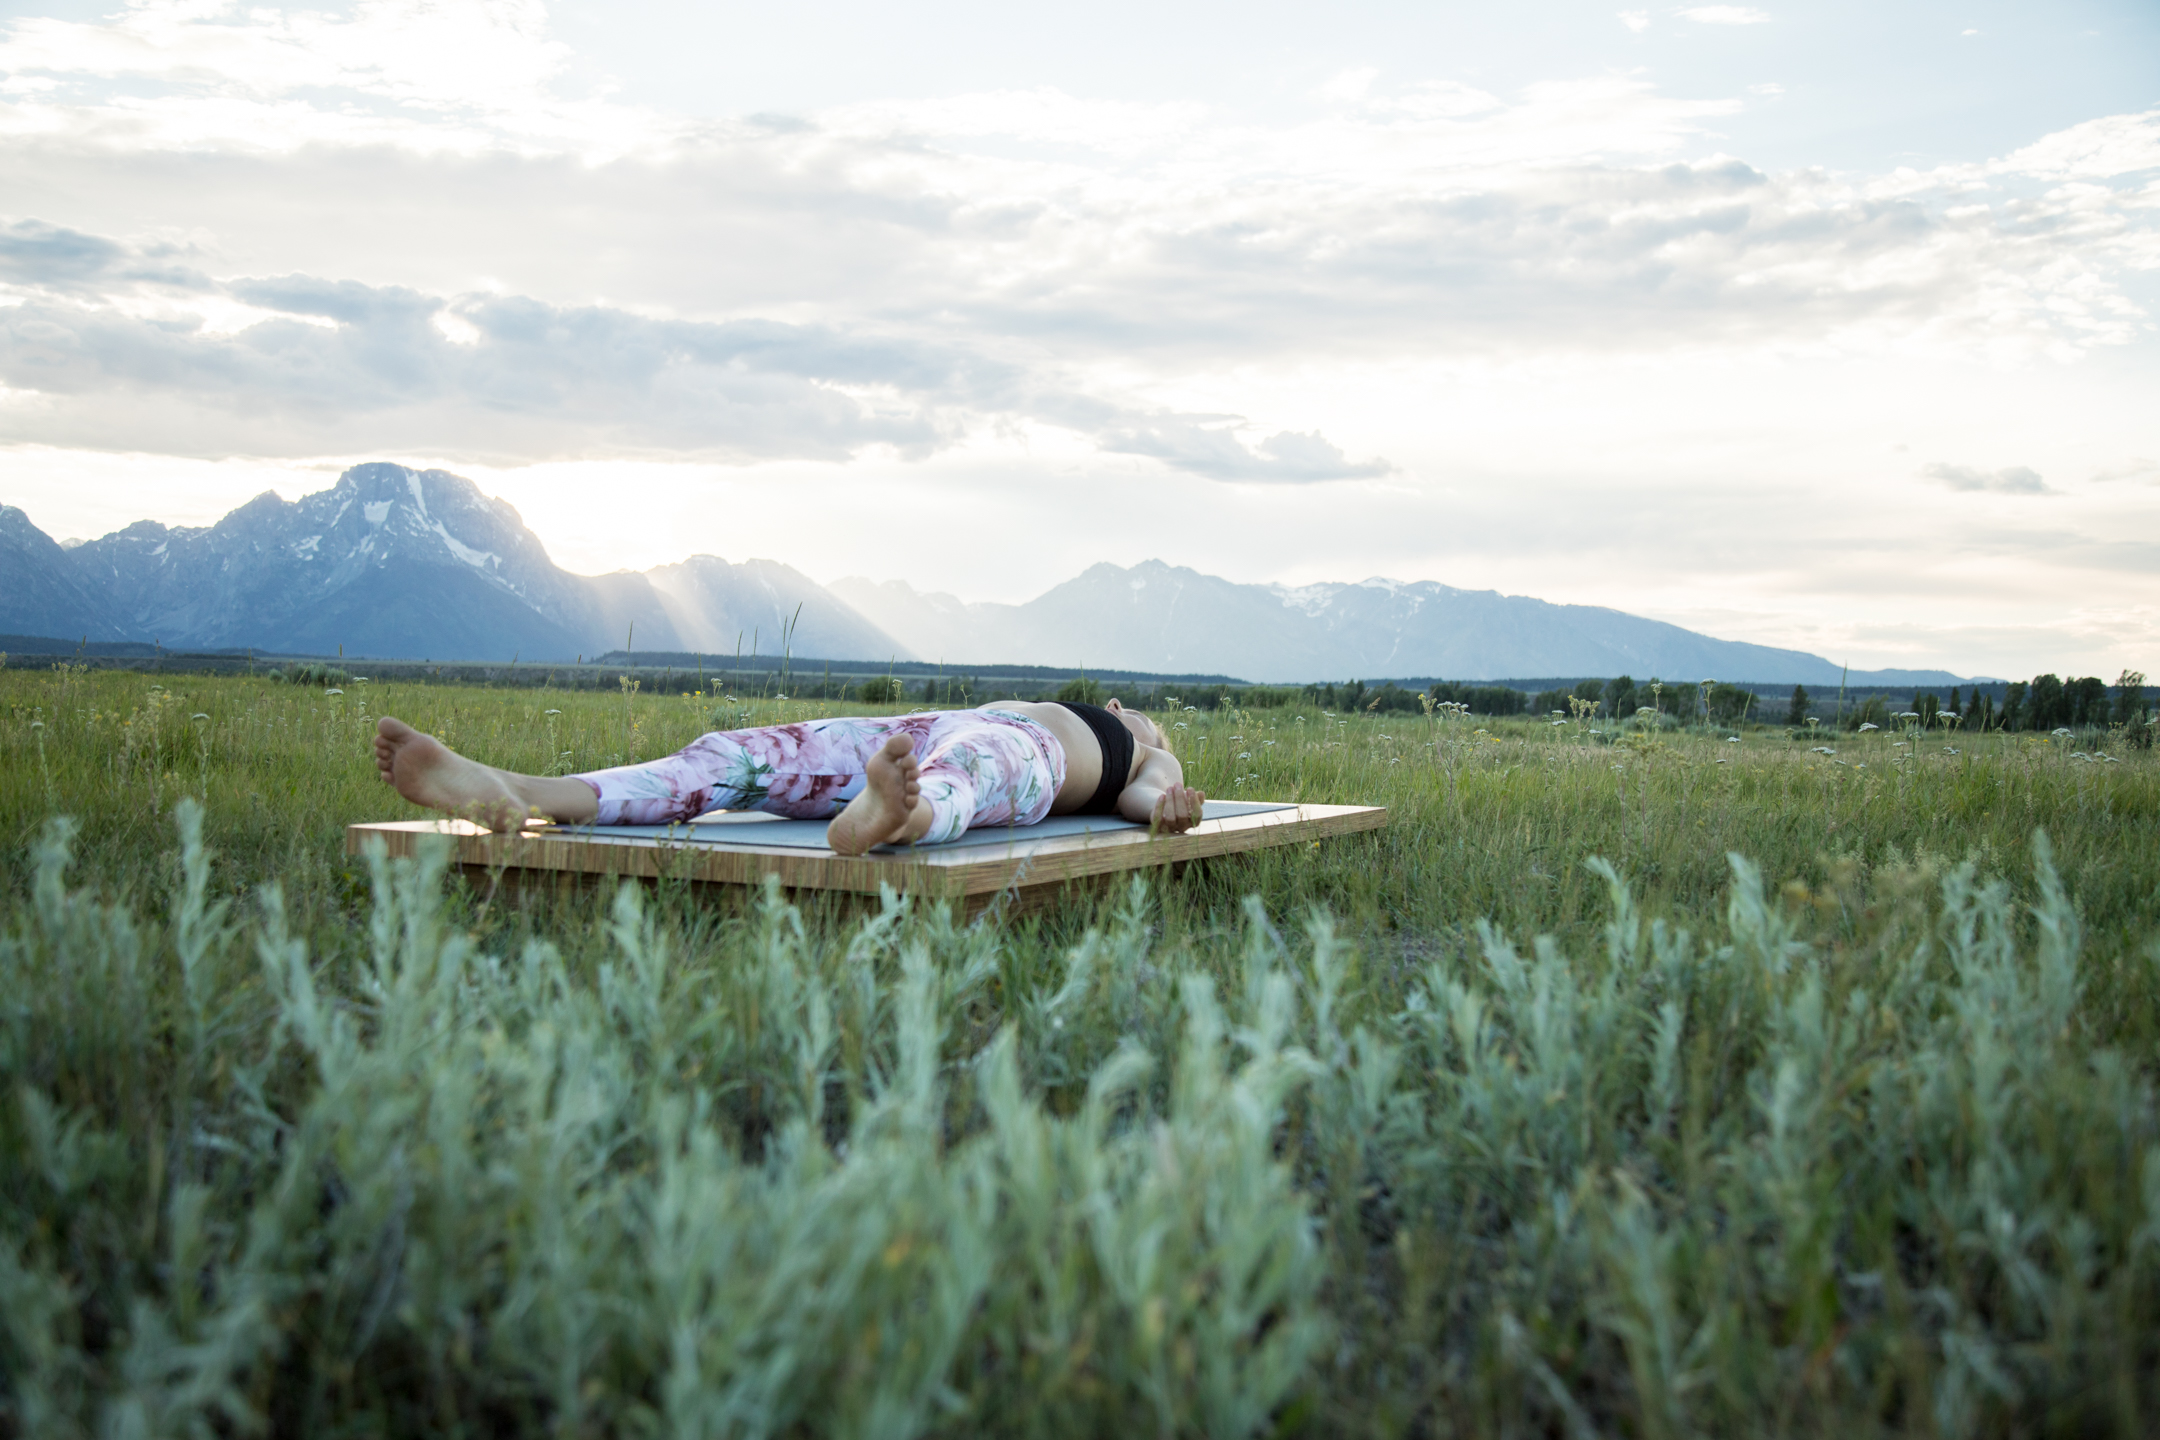 woman lies in savasana yoga pose outdoors